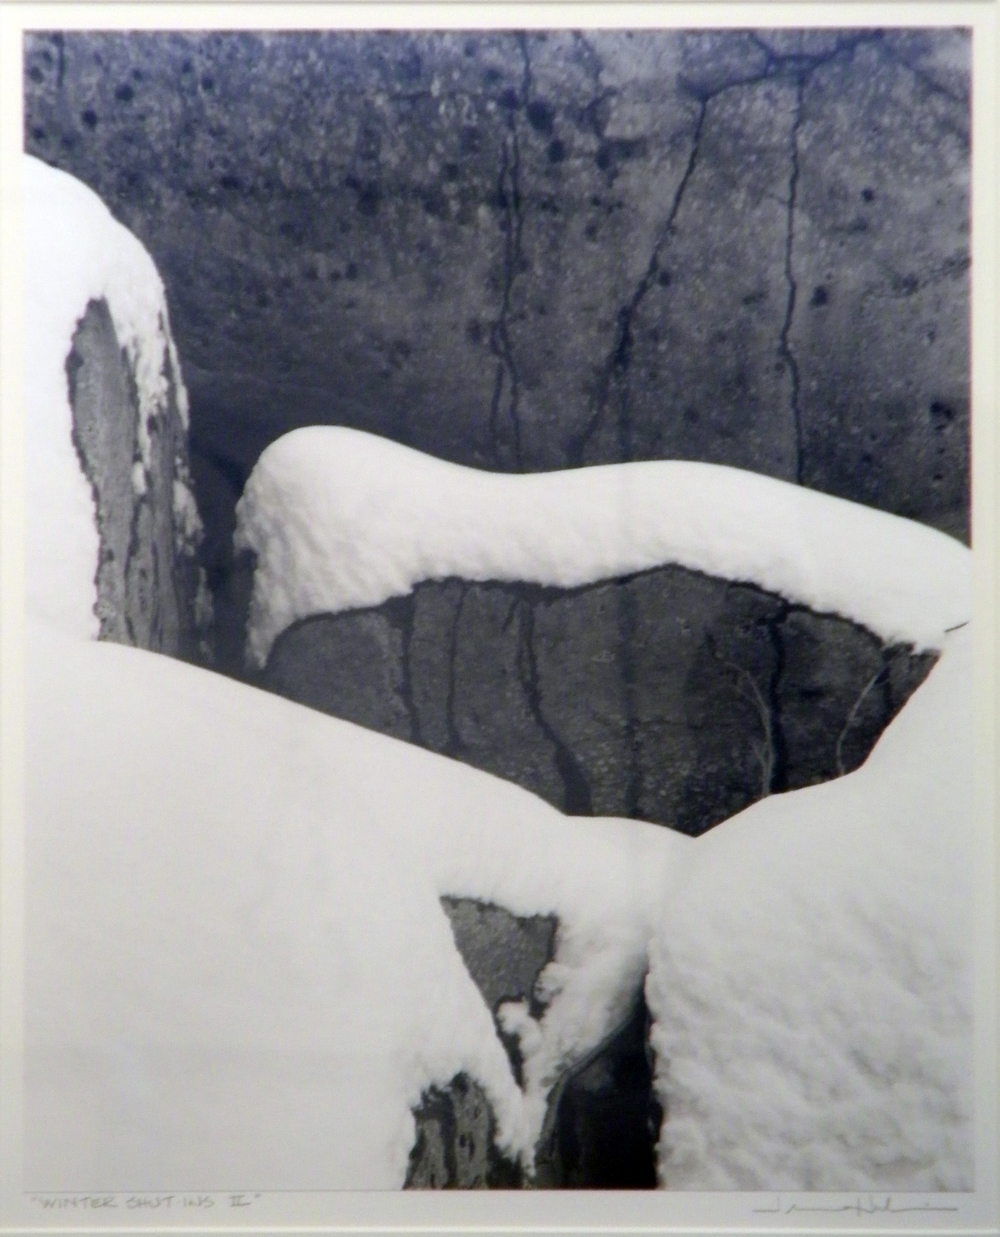 "Jerome Hawkins    Winter Shut-Ins II  , 1995  black and white photo, 1/1  29 1/8"" x 25 1/8"""